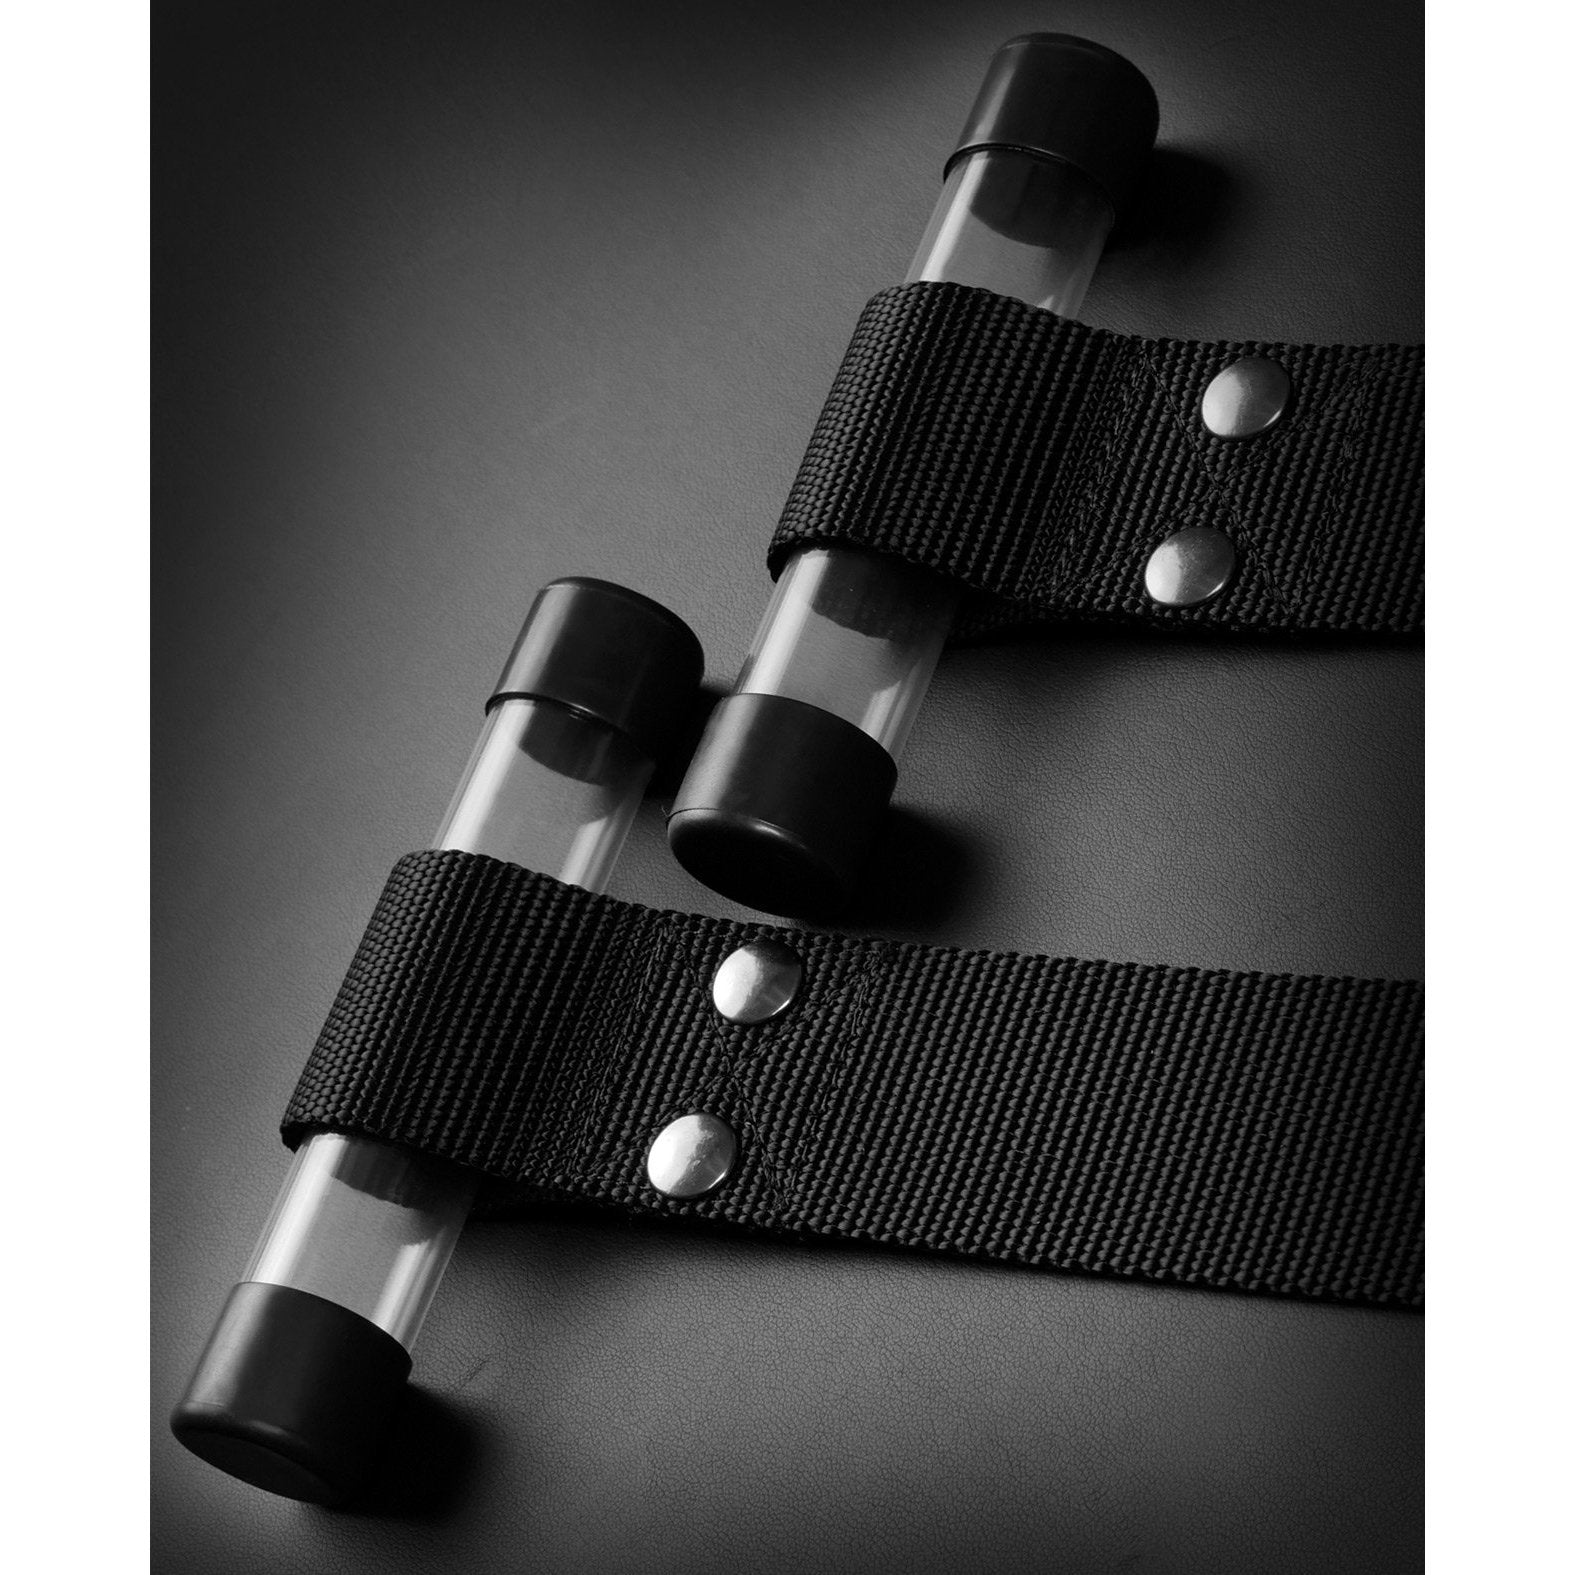 Sir Richards Command Bondage Door Cuffs - Gay Men's Sex Toys - Adam's Toy Box